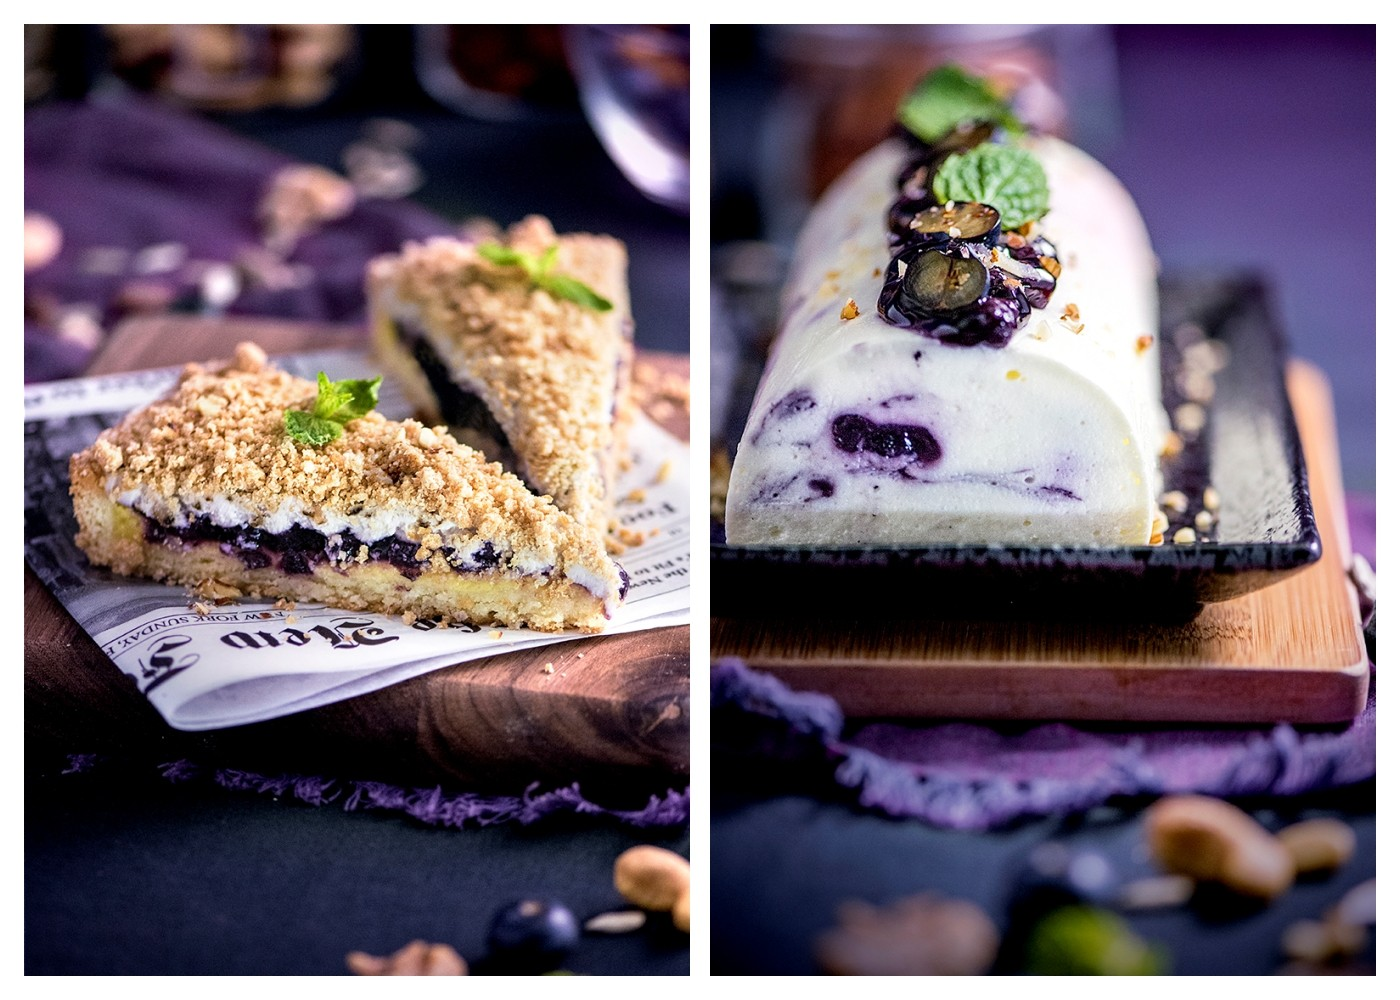 Nuts & Blueberry Weekend Afternoon Tea Buffet - Desserts